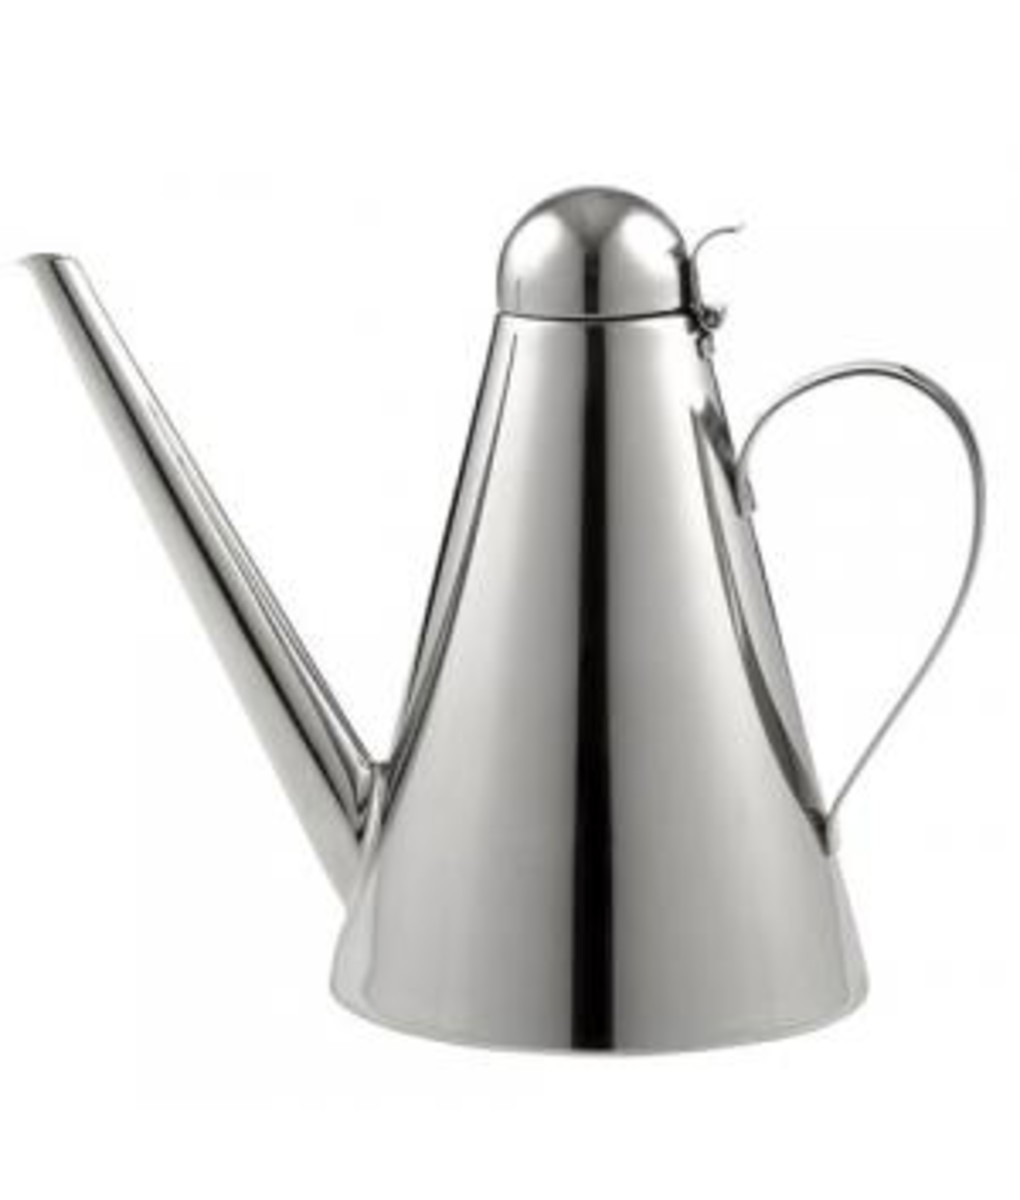 Oil Can - Napoli by Davis & Waddell - Stainless Steel 500ml